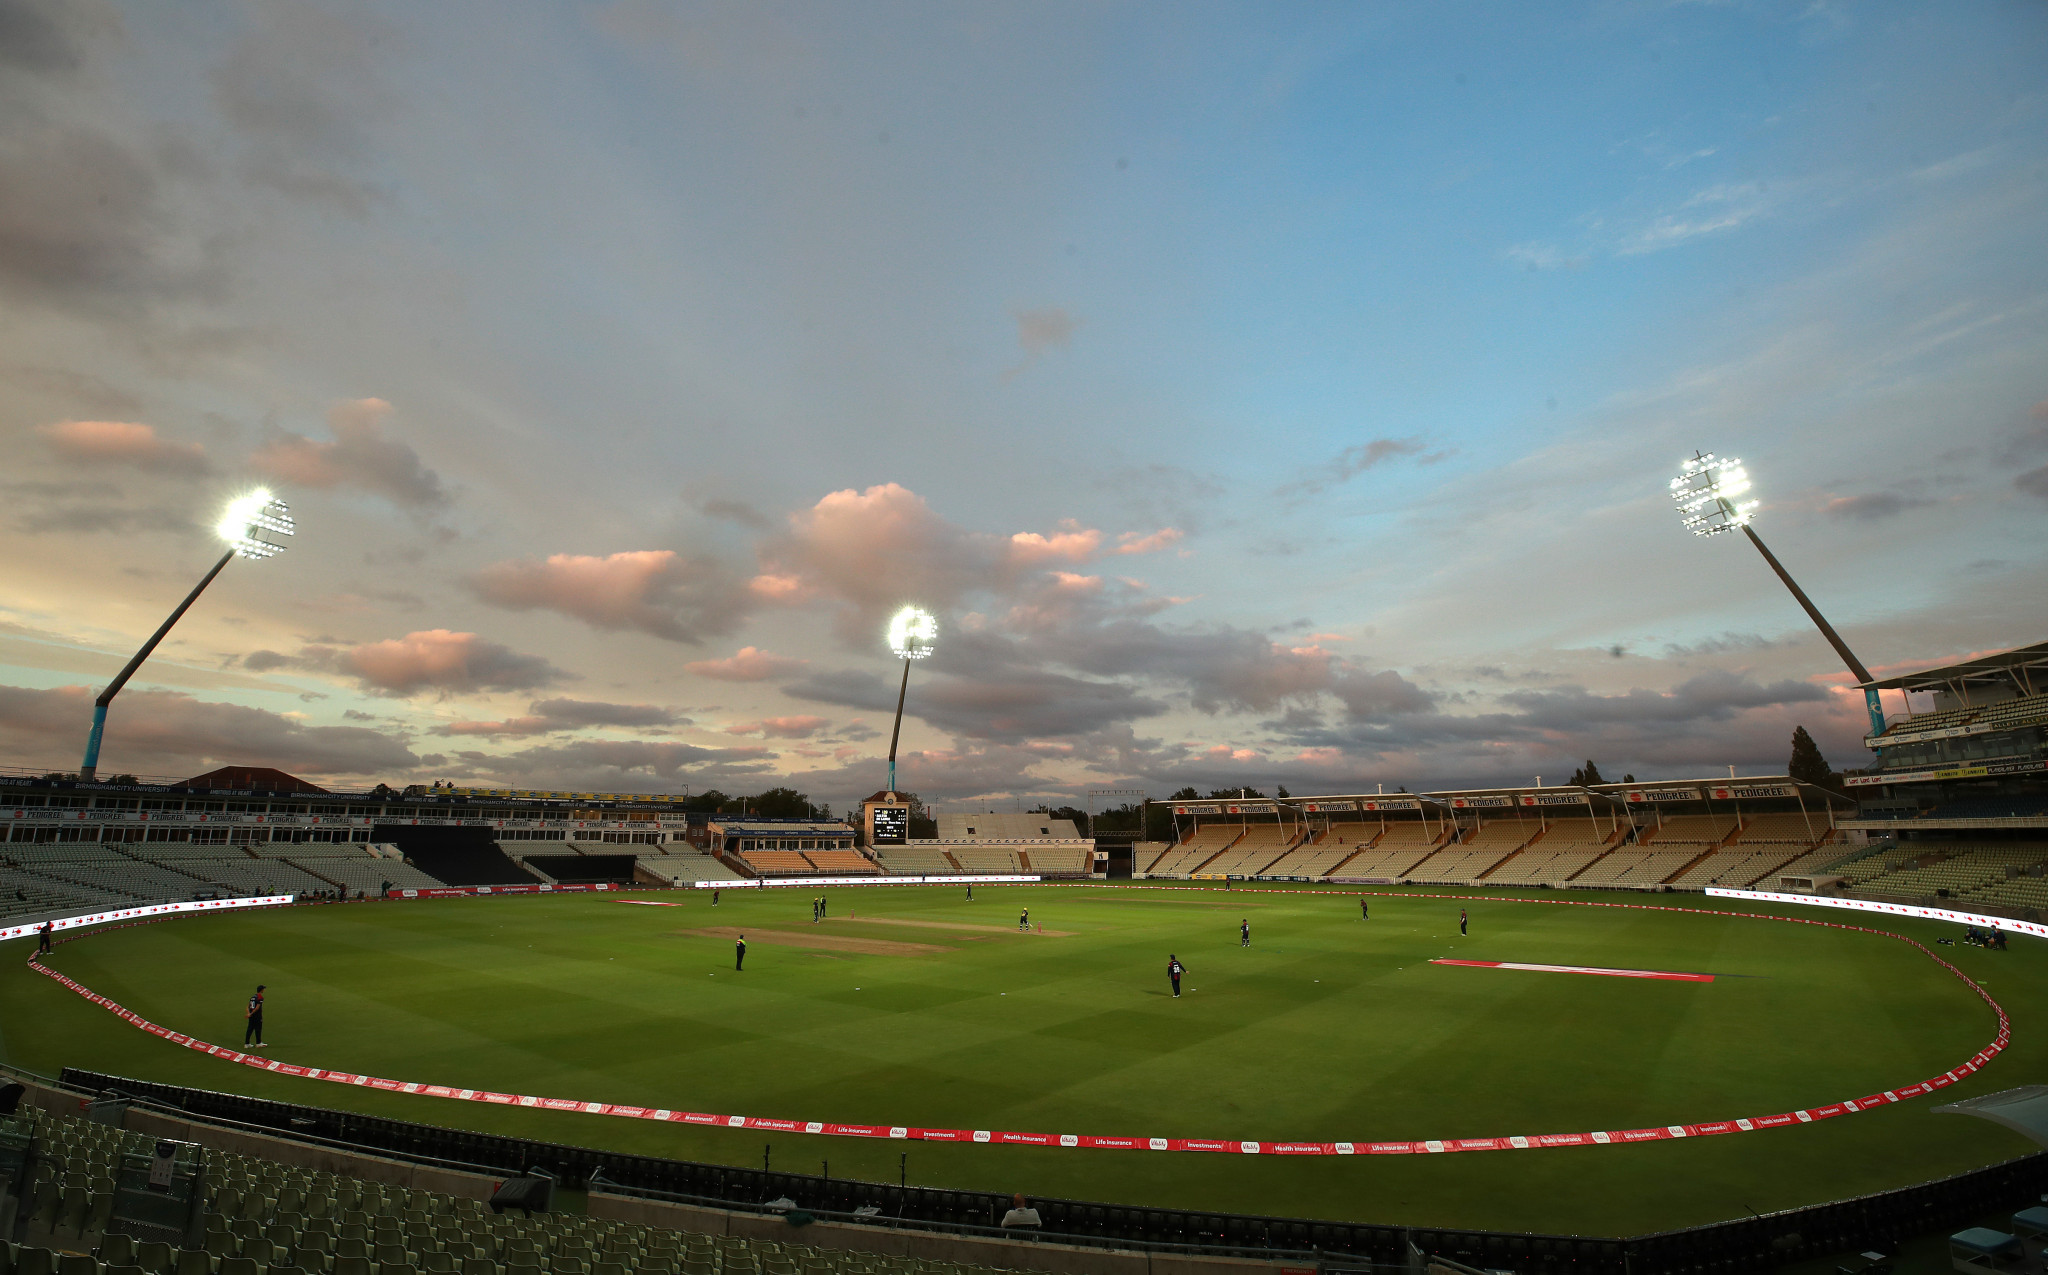 Edgbaston cricket ground will host the women's T20 competition at the Games ©Getty Images